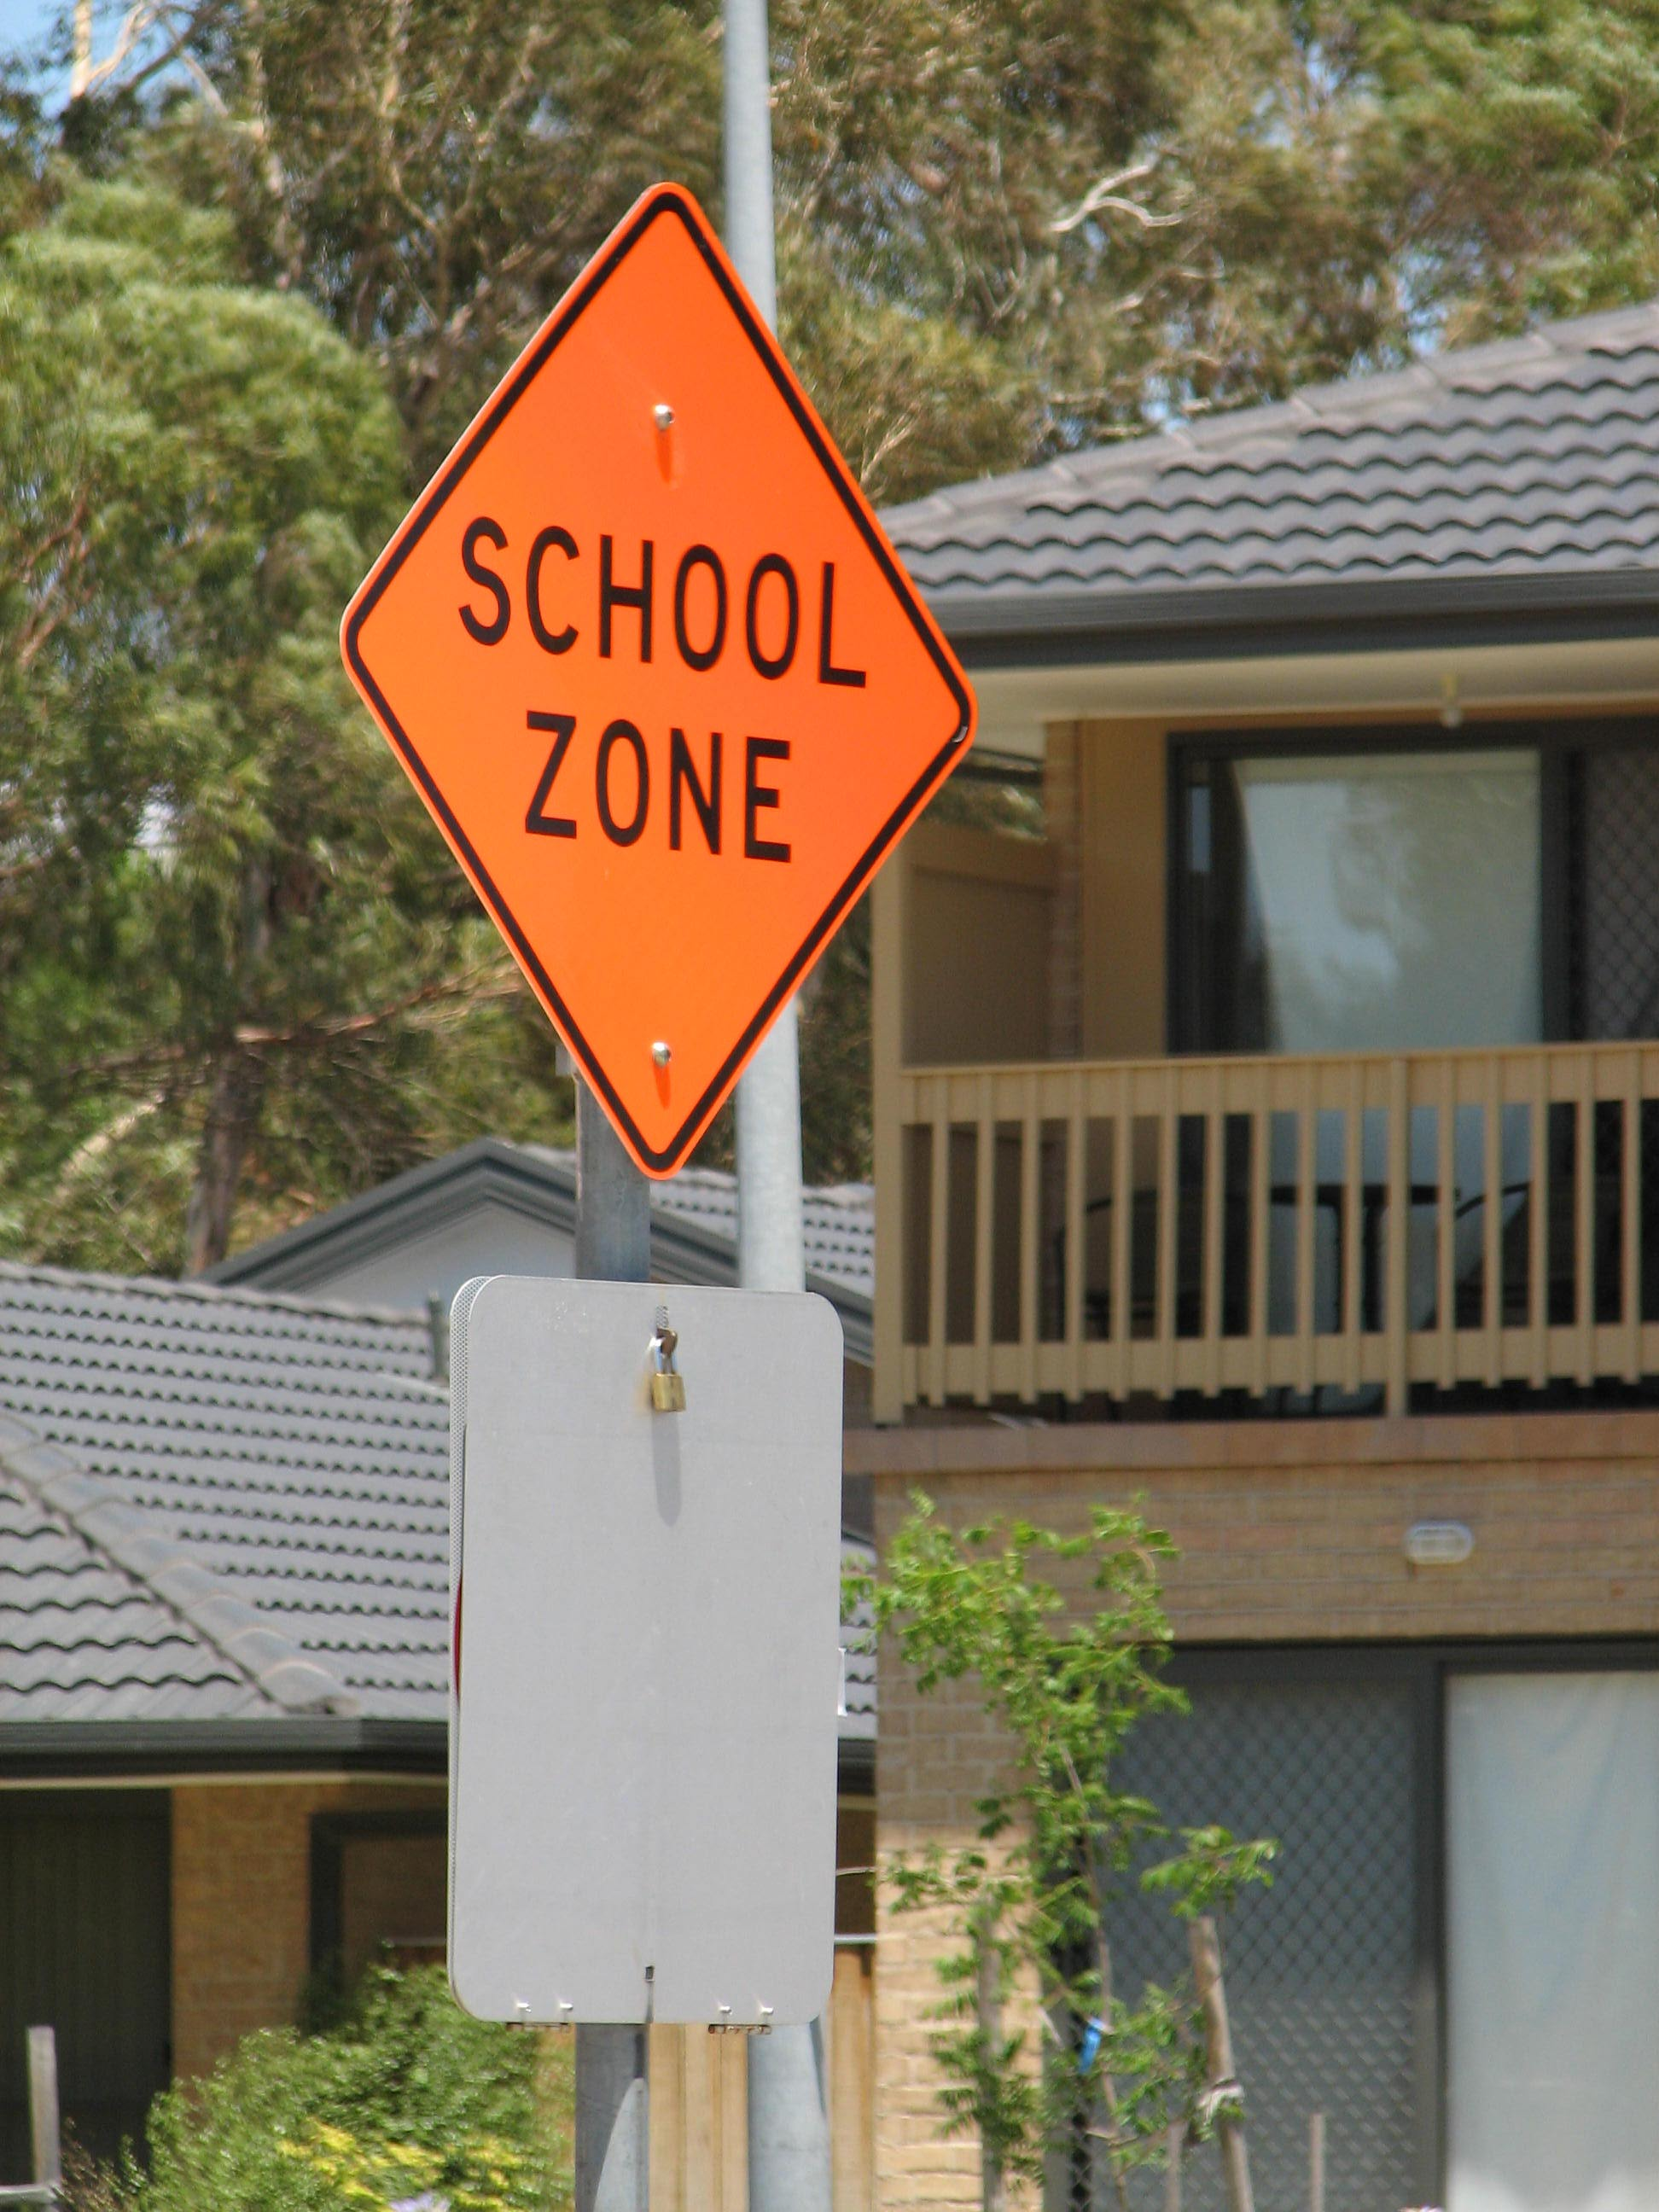 School Holidays Canberra File School Zone In Canberra Jpg Wikimedia Commons